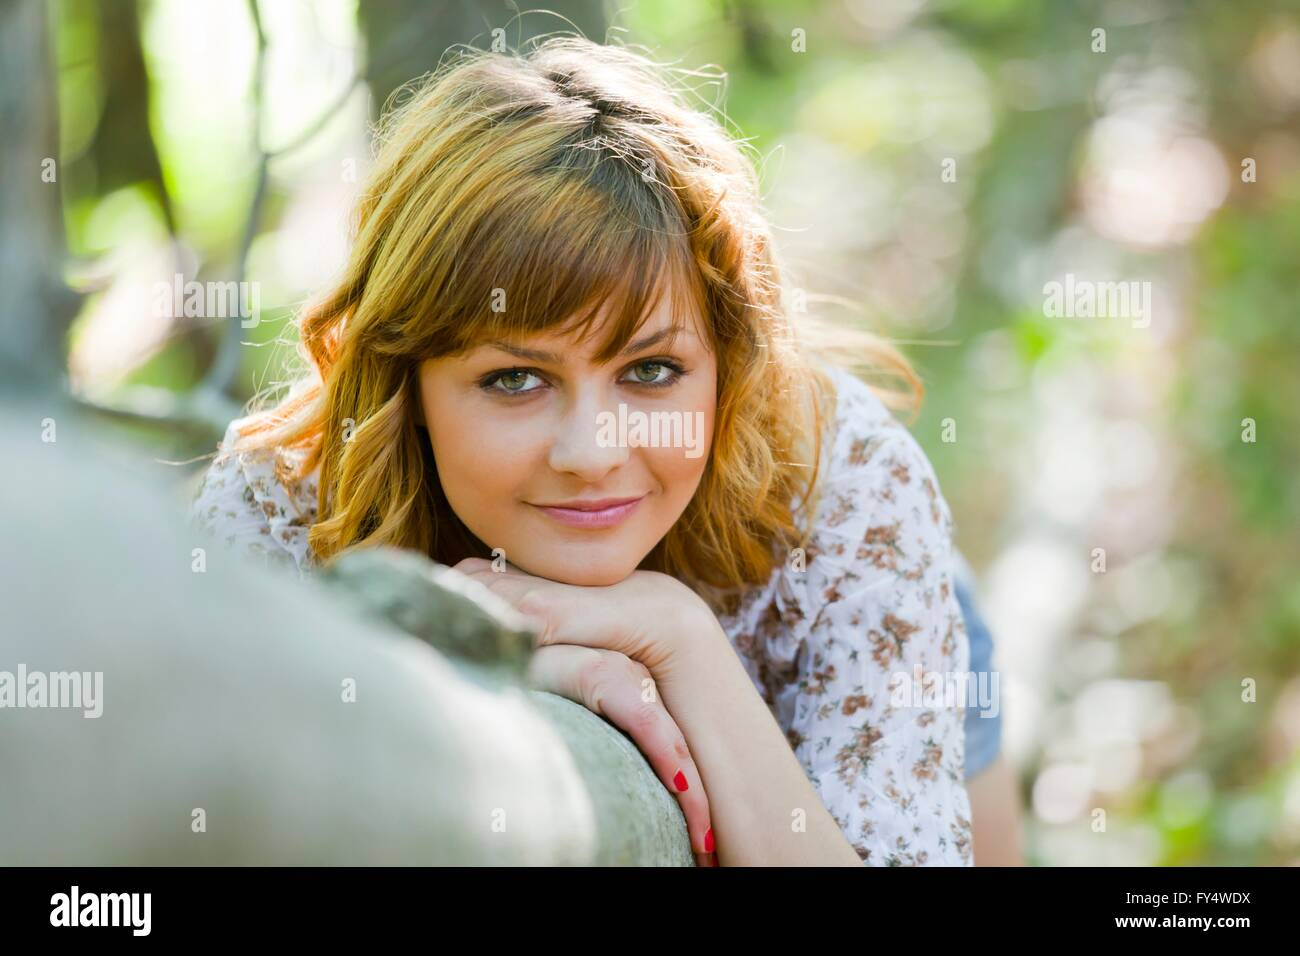 Nature-lover teen girl beautiful portrait outdoors attractive face charm personality teenage wearing apparently - Stock Image